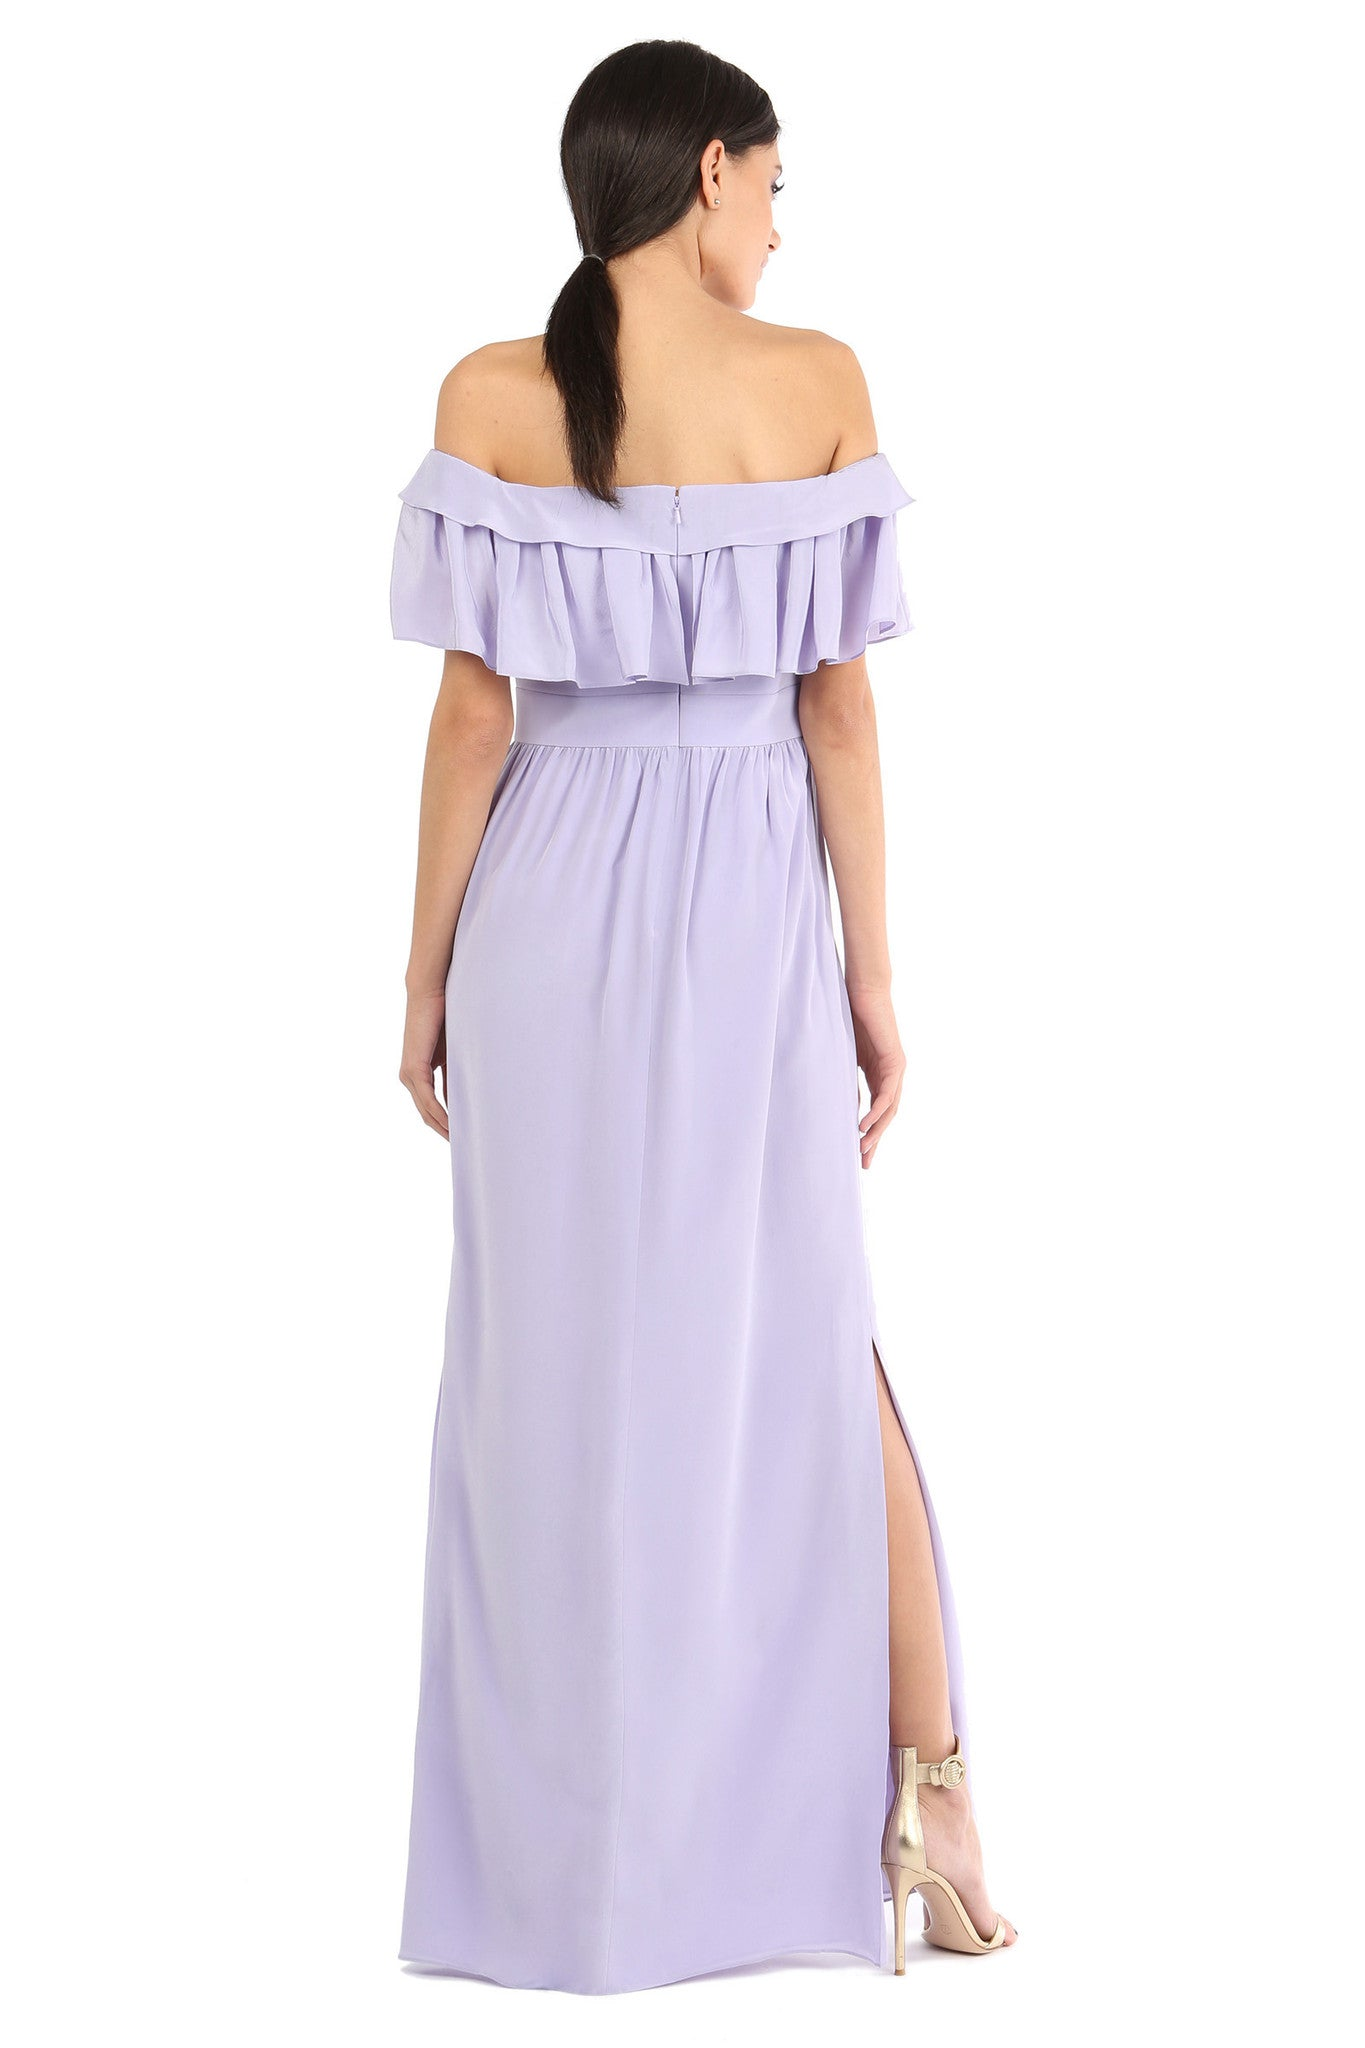 Jay Godfrey Purple Off-the-Shoulder Maxi Dress - Back View